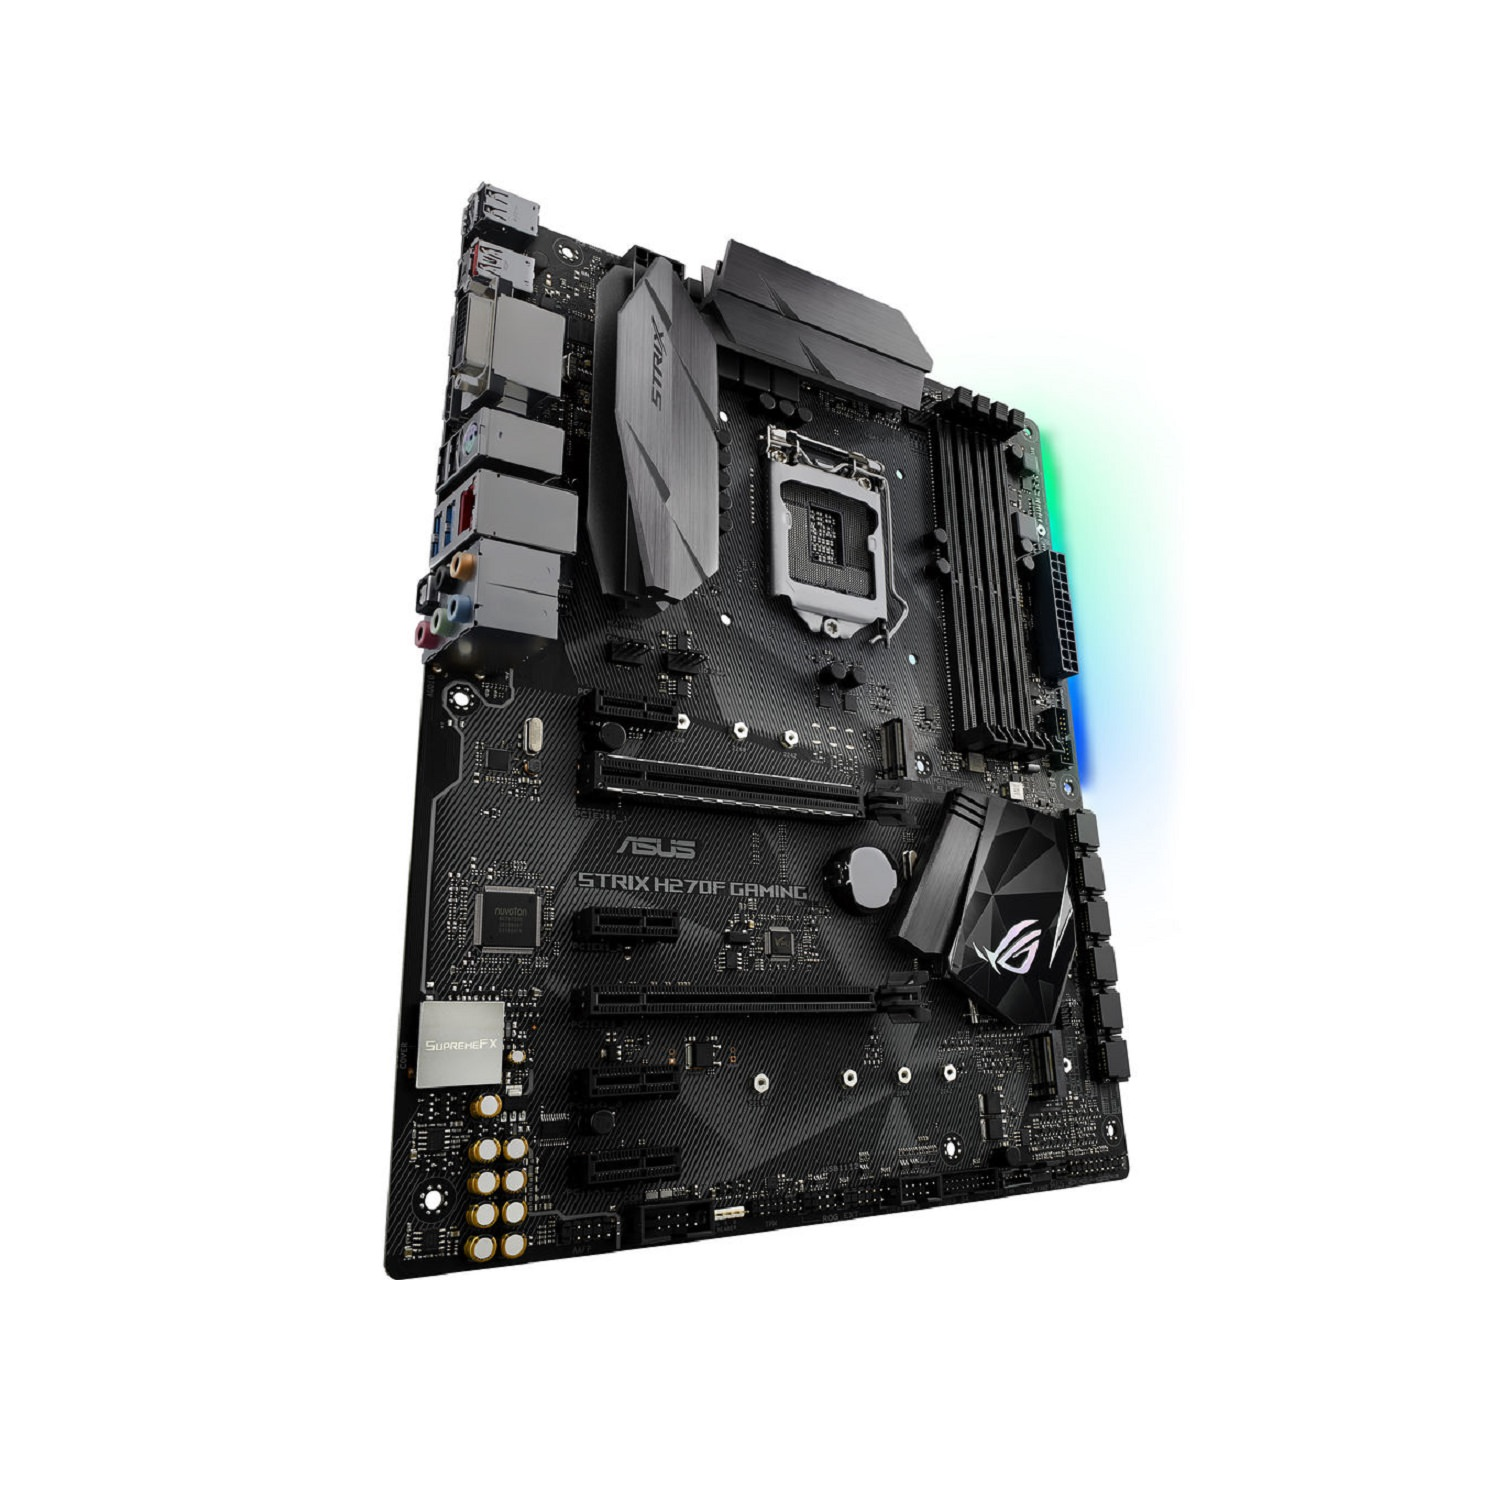 Asus Strix H270F Gaming Motherboard - STRIX H270F GAMING